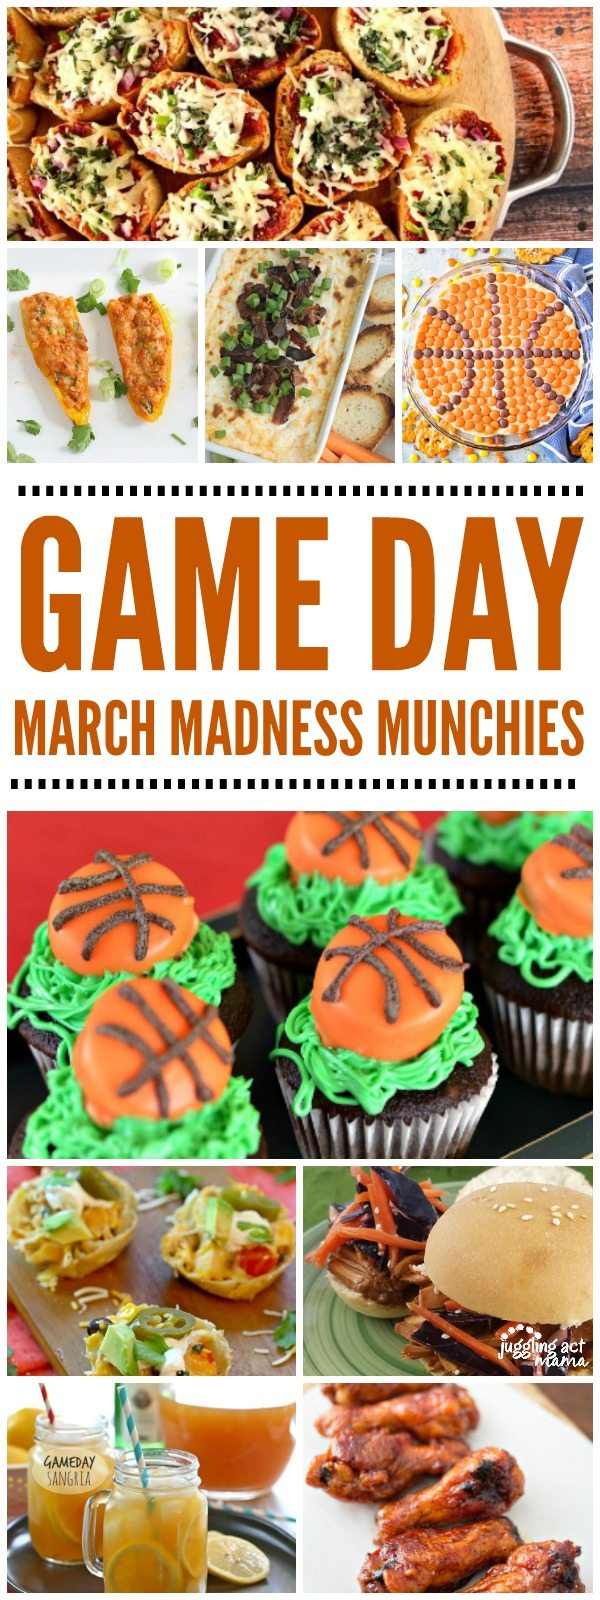 We've got plenty of Game Day March Madness Munchies for you to choose from! #gameday #MarchMadness #snacks